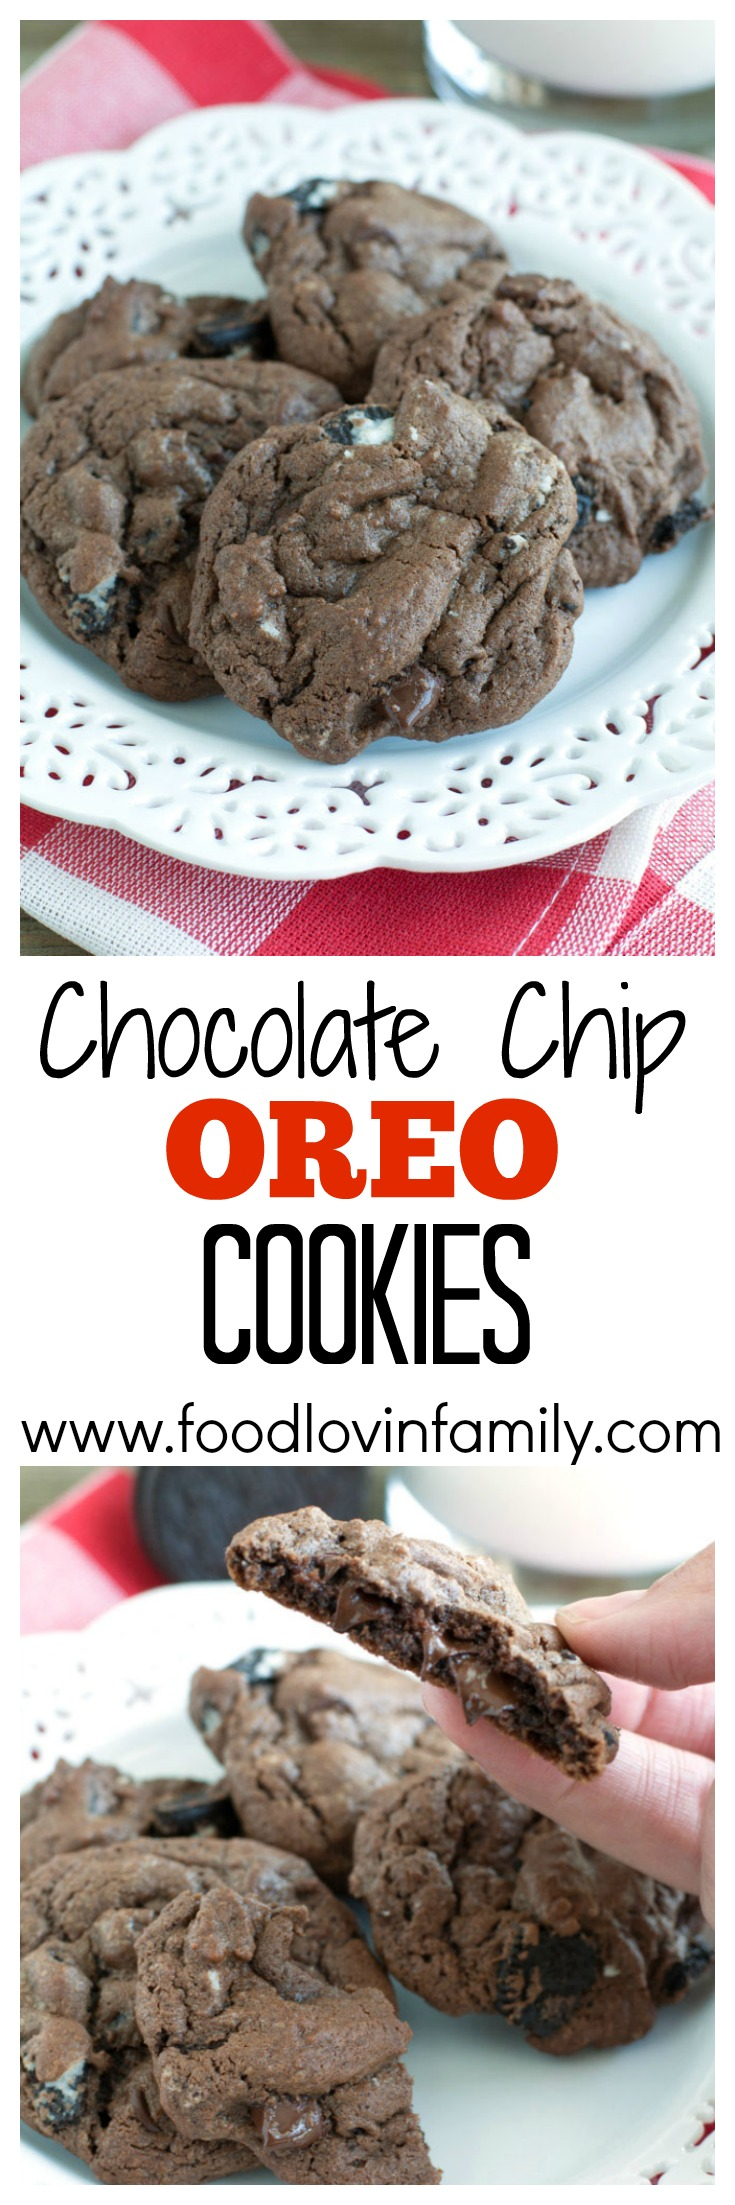 Chocolate Chip Oreo Cookies - Rich chocolate cookies full of chopped Oreo cookies and chocolate chips. PIN